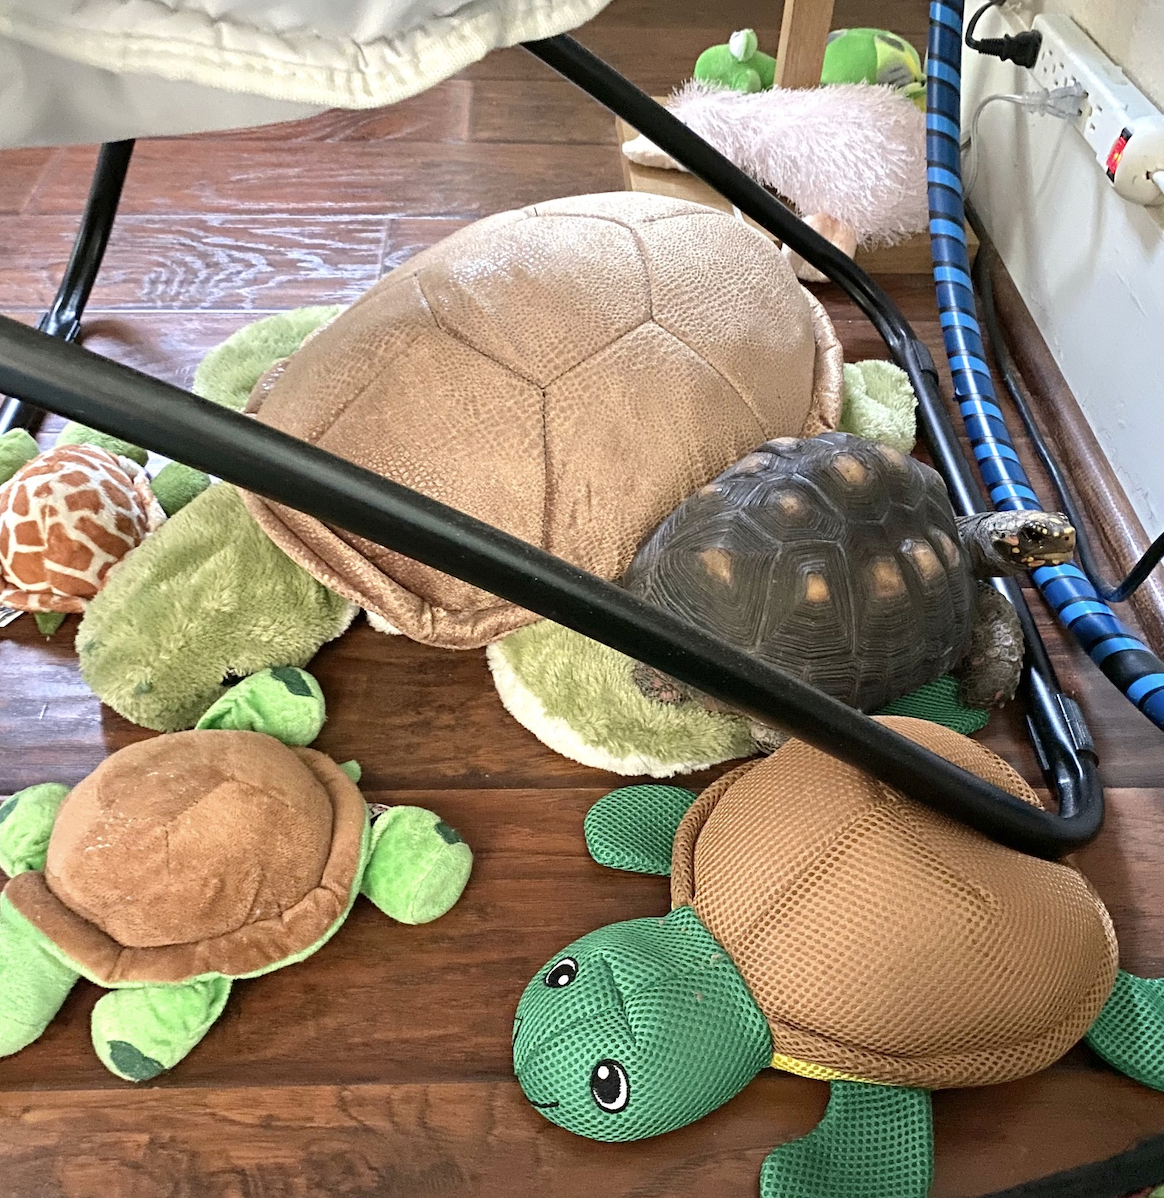 redfoot tortoise with toy tortoises